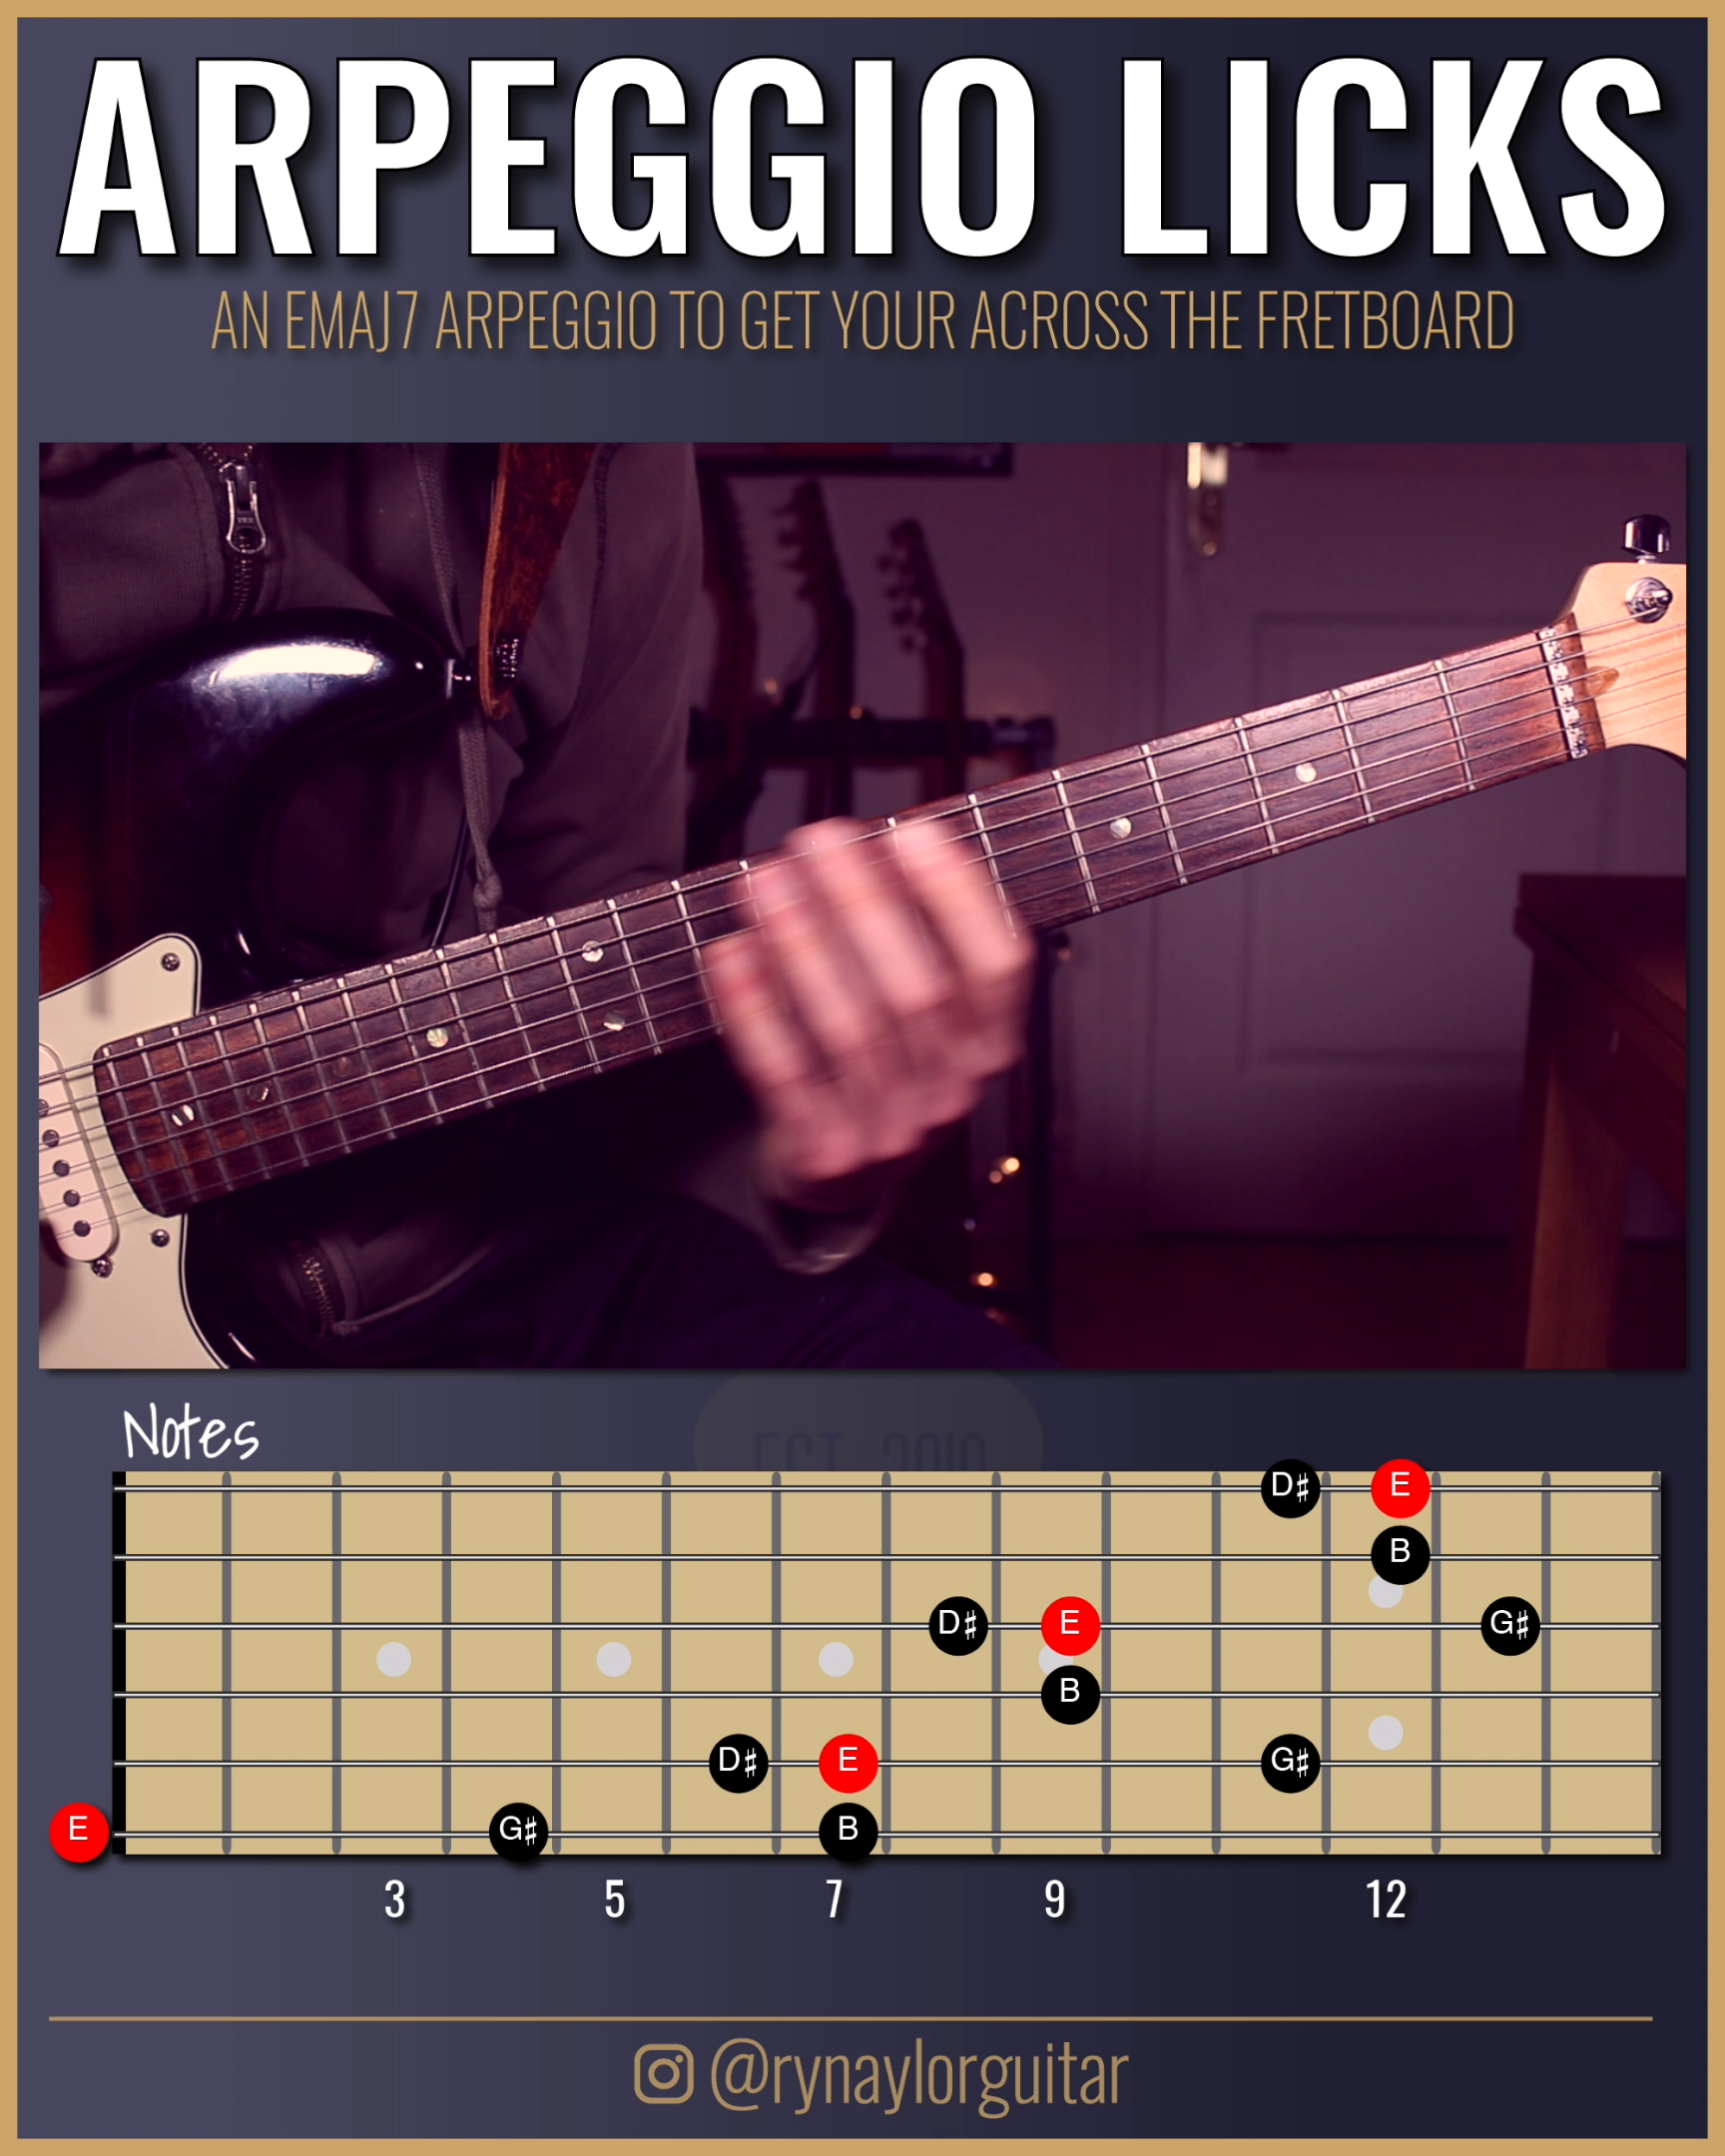 A very useful ascending arpeggio line that I was enjoying in my practice this morning. Arpeggios are so satisfying.   This is an E major 7th arpeggio (R-3-5-7) spanning THREE octaves.  For more insight on exactly how I played the lick, there are Soundslice interactive tabs (synced to the video) available to all members of my Patreon group.